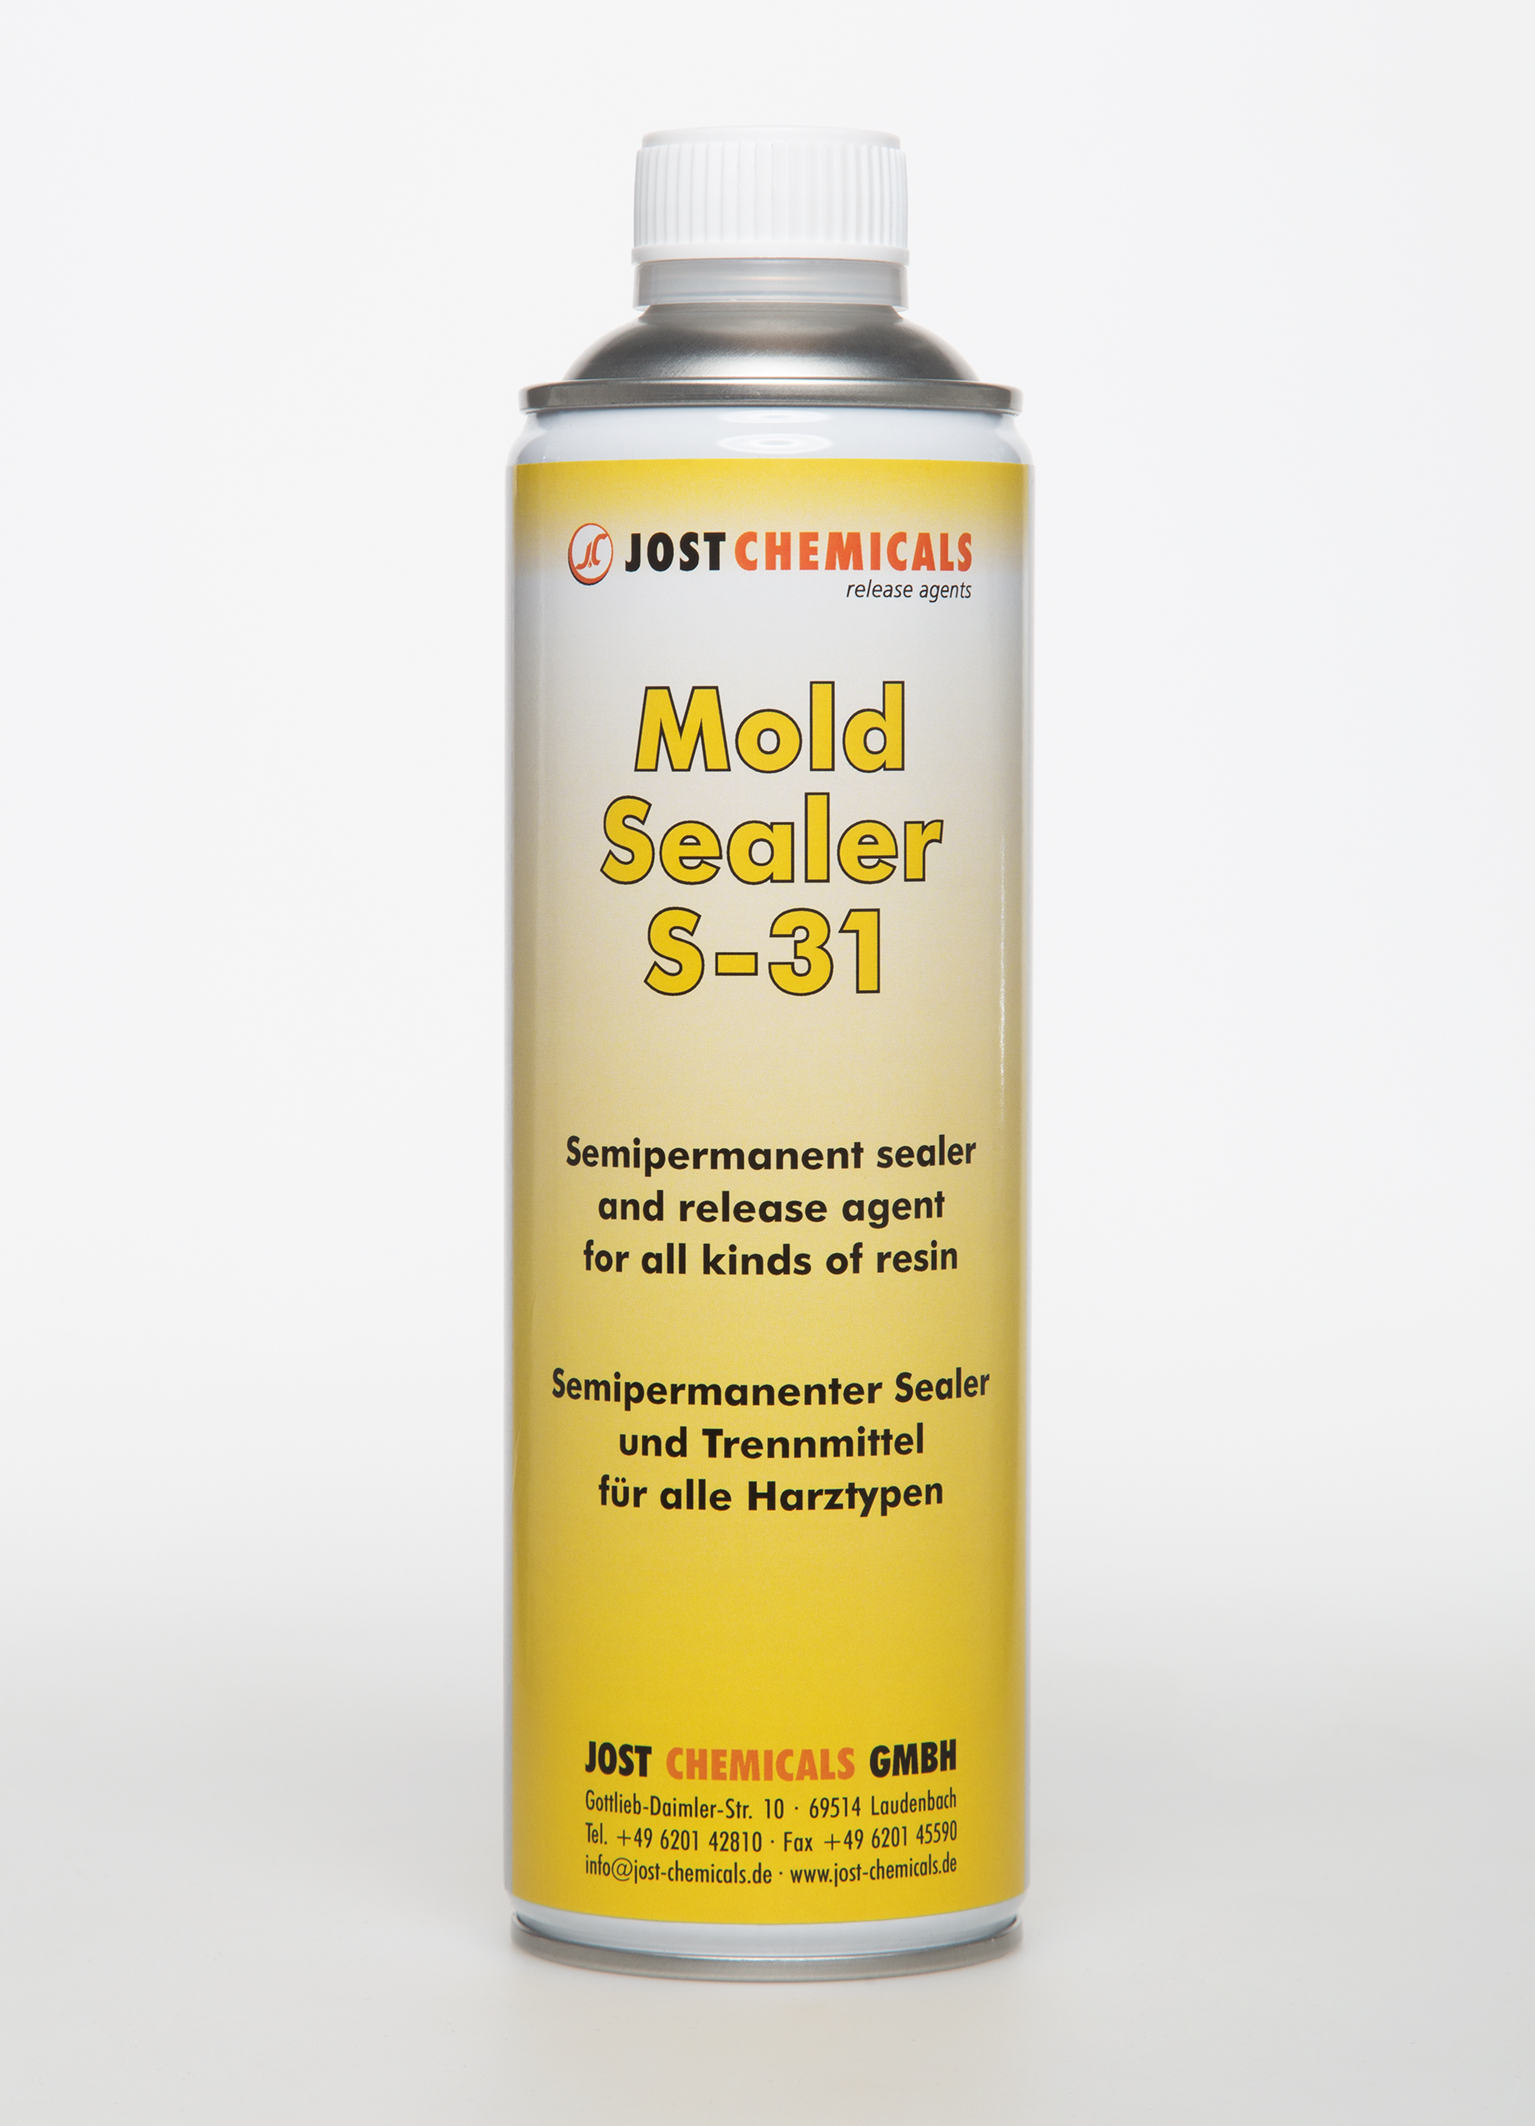 Mold Sealer S 31 - Jost Chemicals GmbH